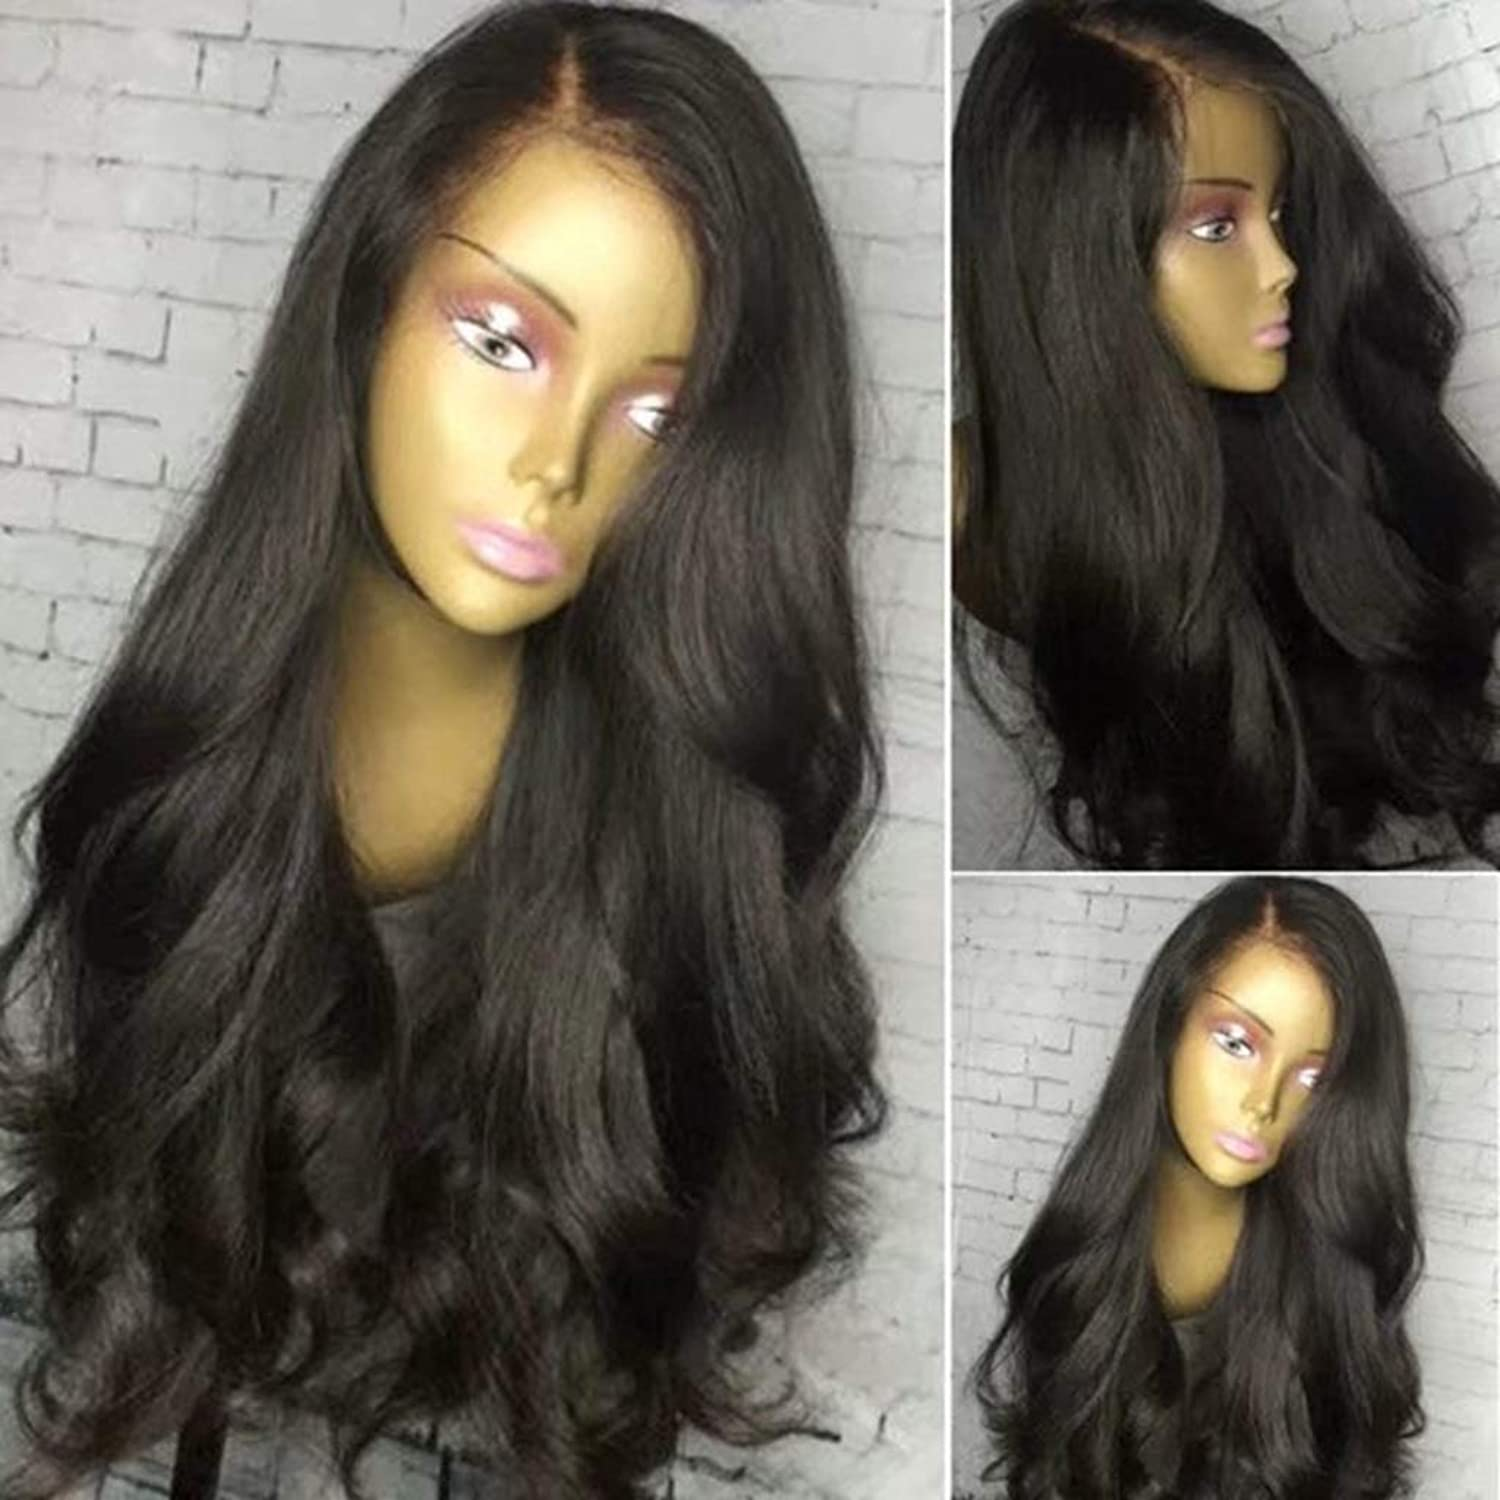 ZDNALS Wig, Natural Big Wavy Curly Hair Outdoor Female Natural Big Wavy Synthetic Lace Front Wig 24 Inches wig